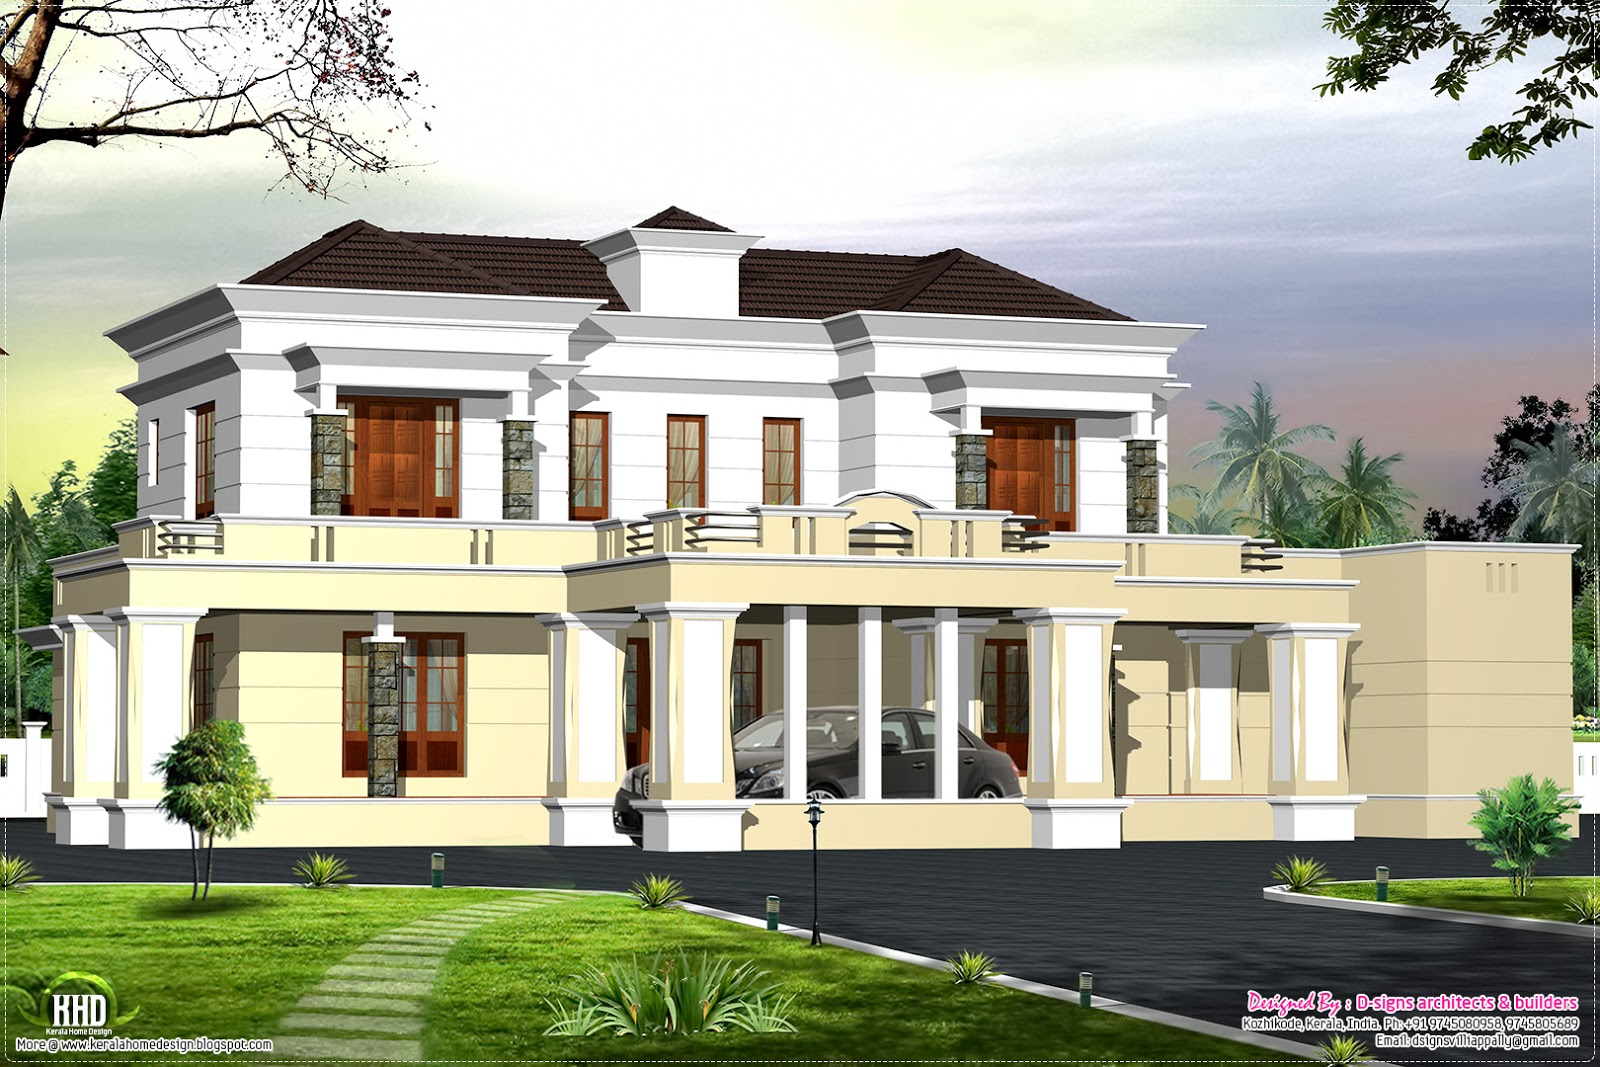 New Home Design: Victorian style luxury home design